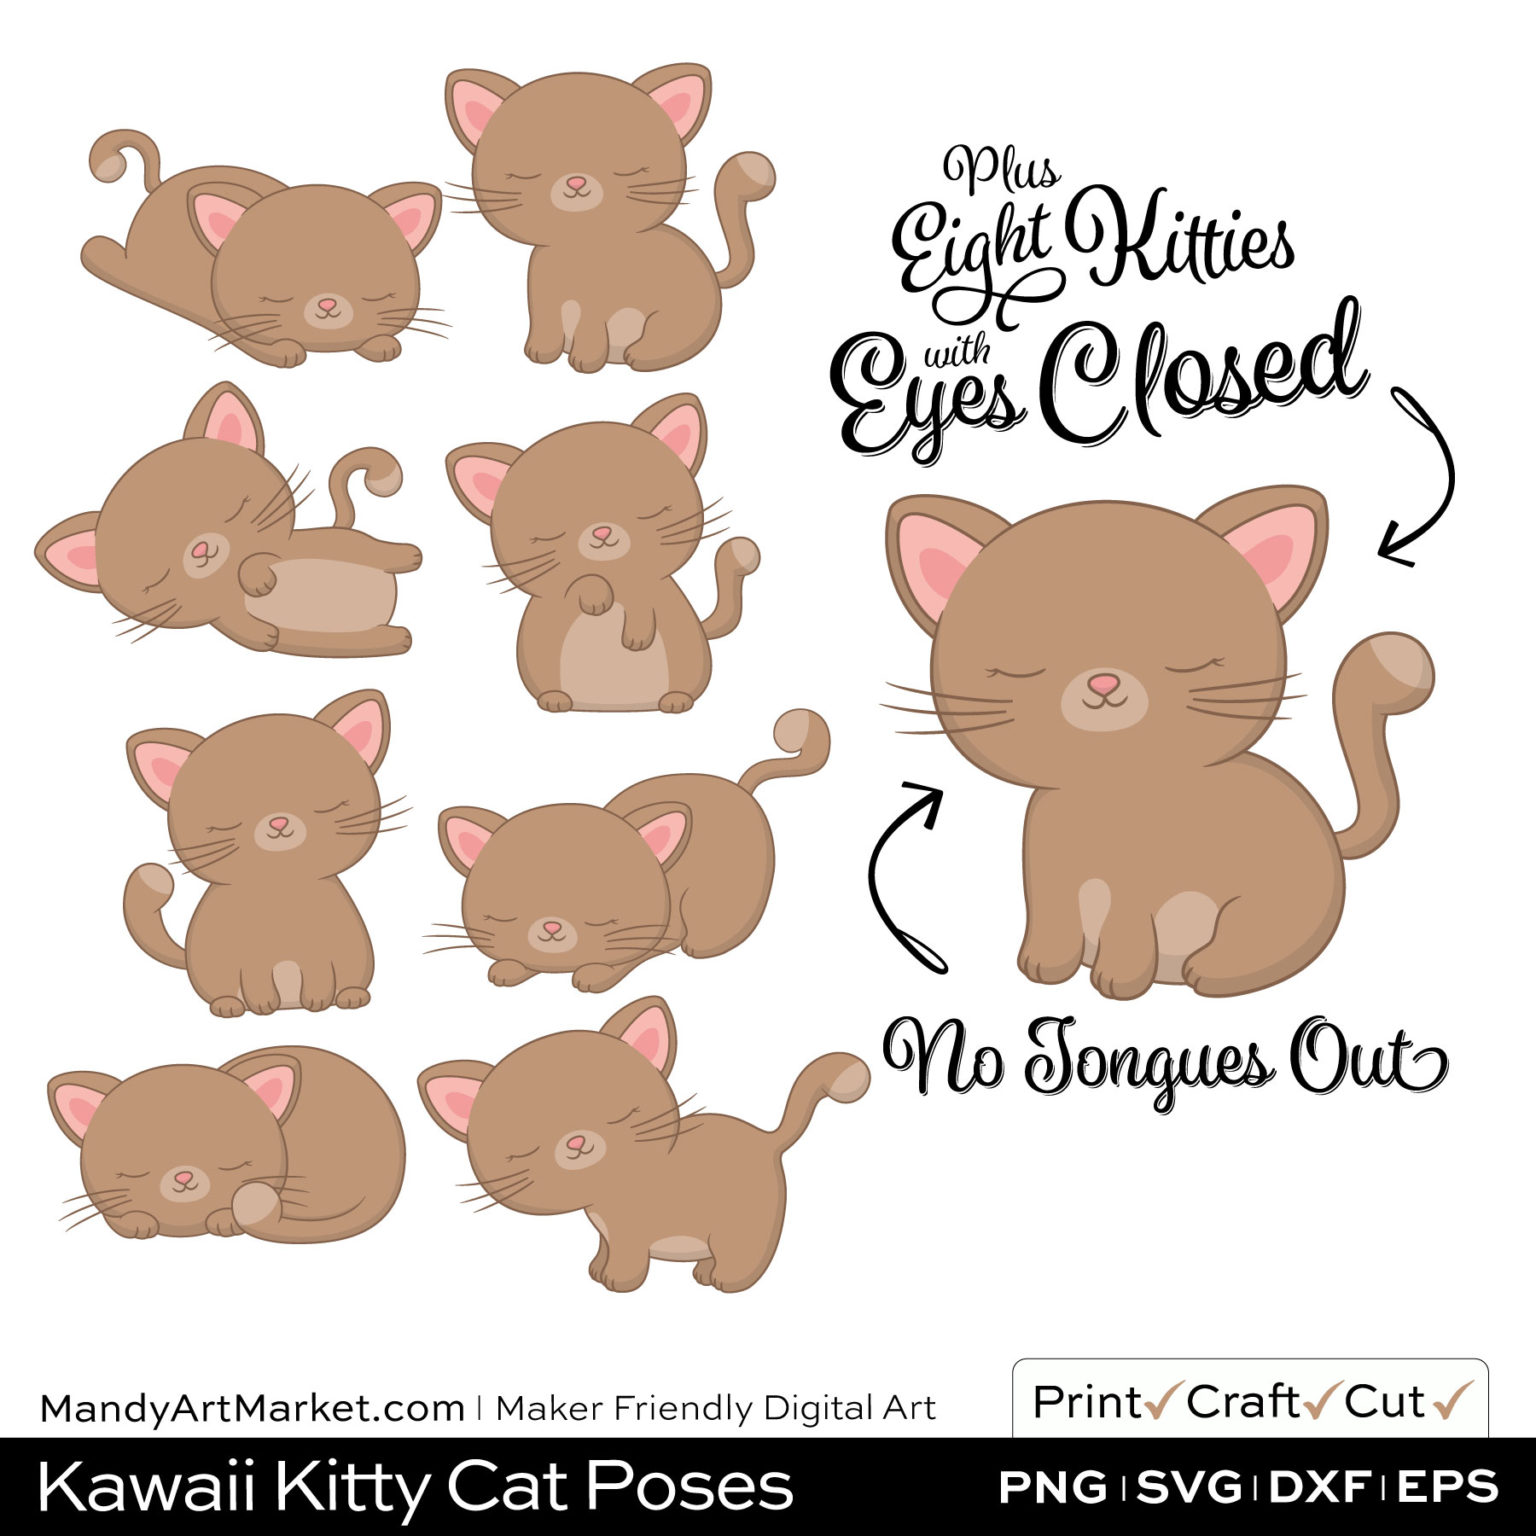 Sand Brown Kawaii Kitty Cat Poses Clipart PNGs Included in Download